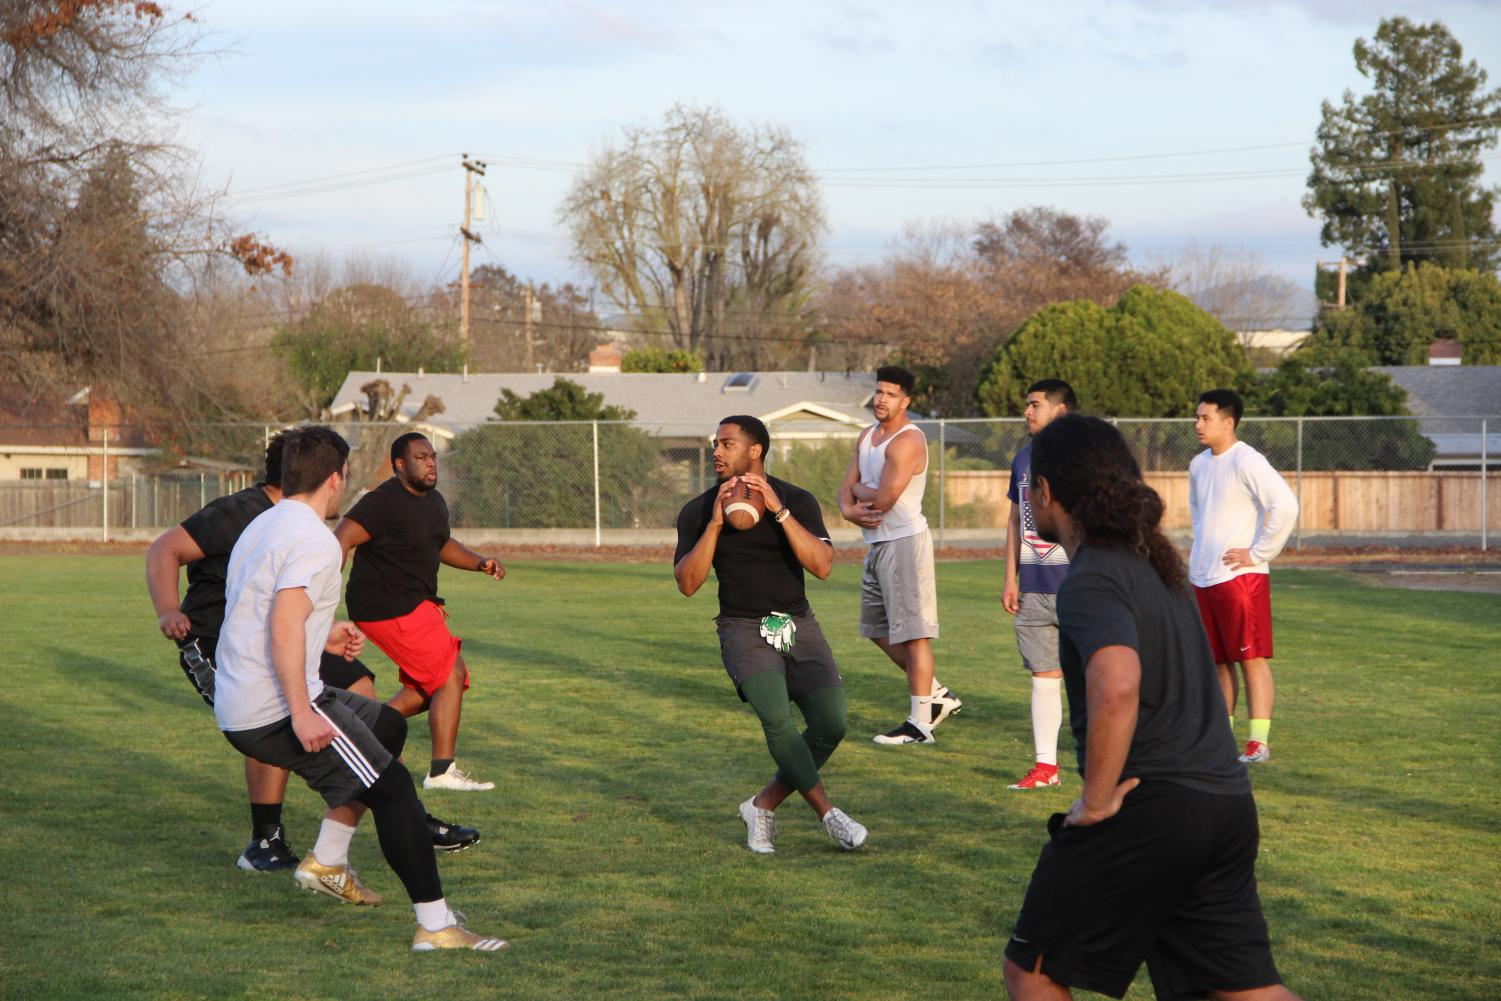 Vikings participate in offensive drills at Diablo Valley College in Pleasant Hill on March 8, 2018.